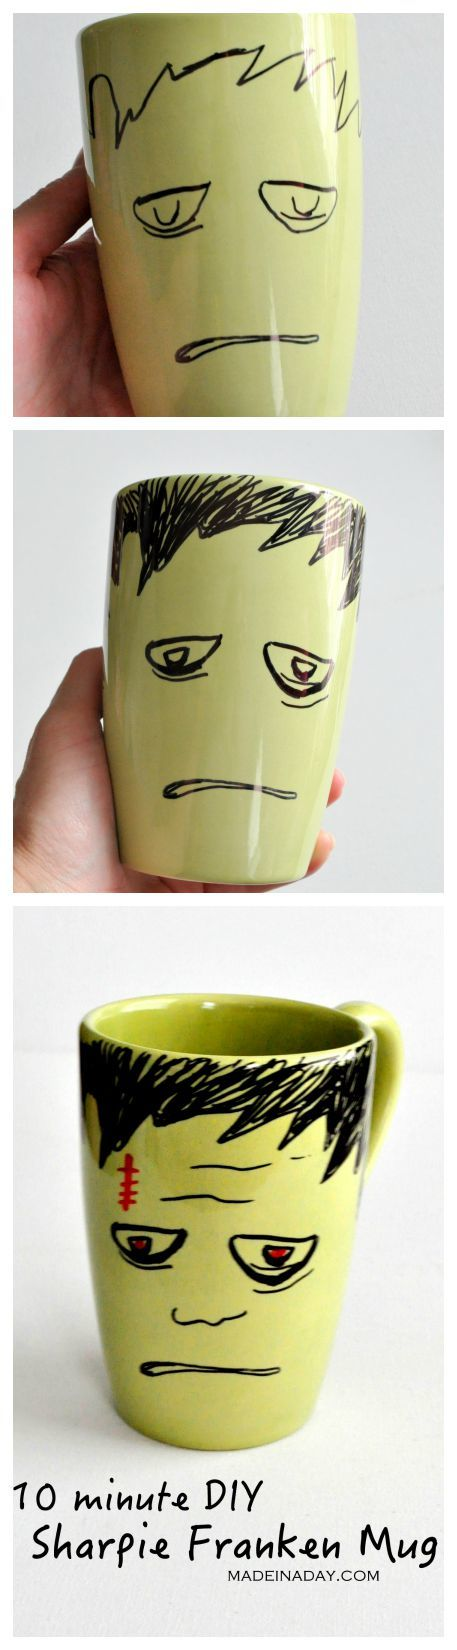 DIY Frankenstein Sharpie Mug 32